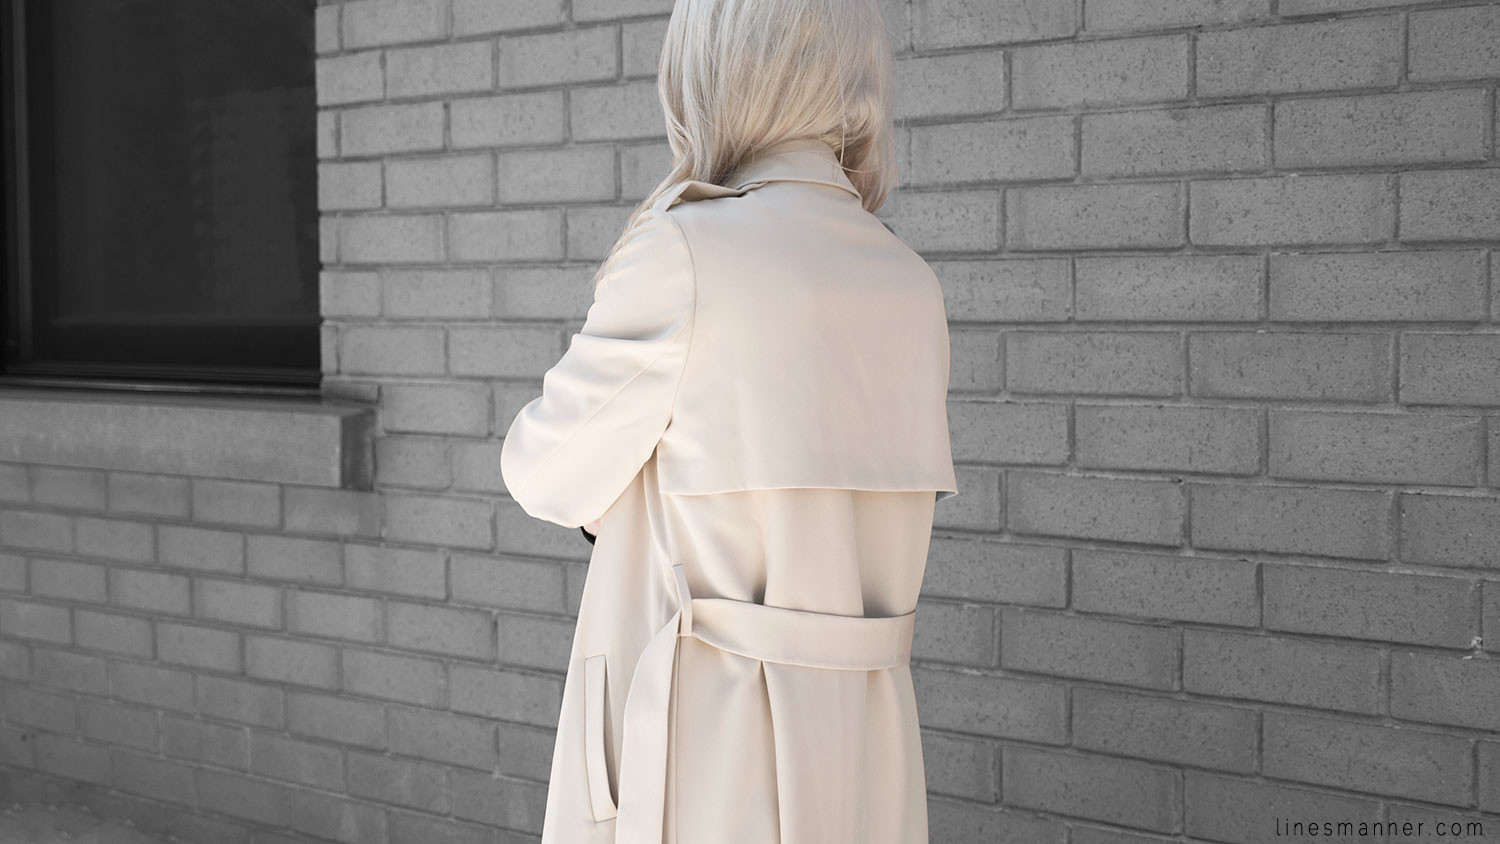 Lines-Manner-Trench-Minimal-Outfits-Fashion-Essentials-Classics-Timeless-Versatile-Details-Hues-Nonchalance-Elegance-Casual-Effortless-1